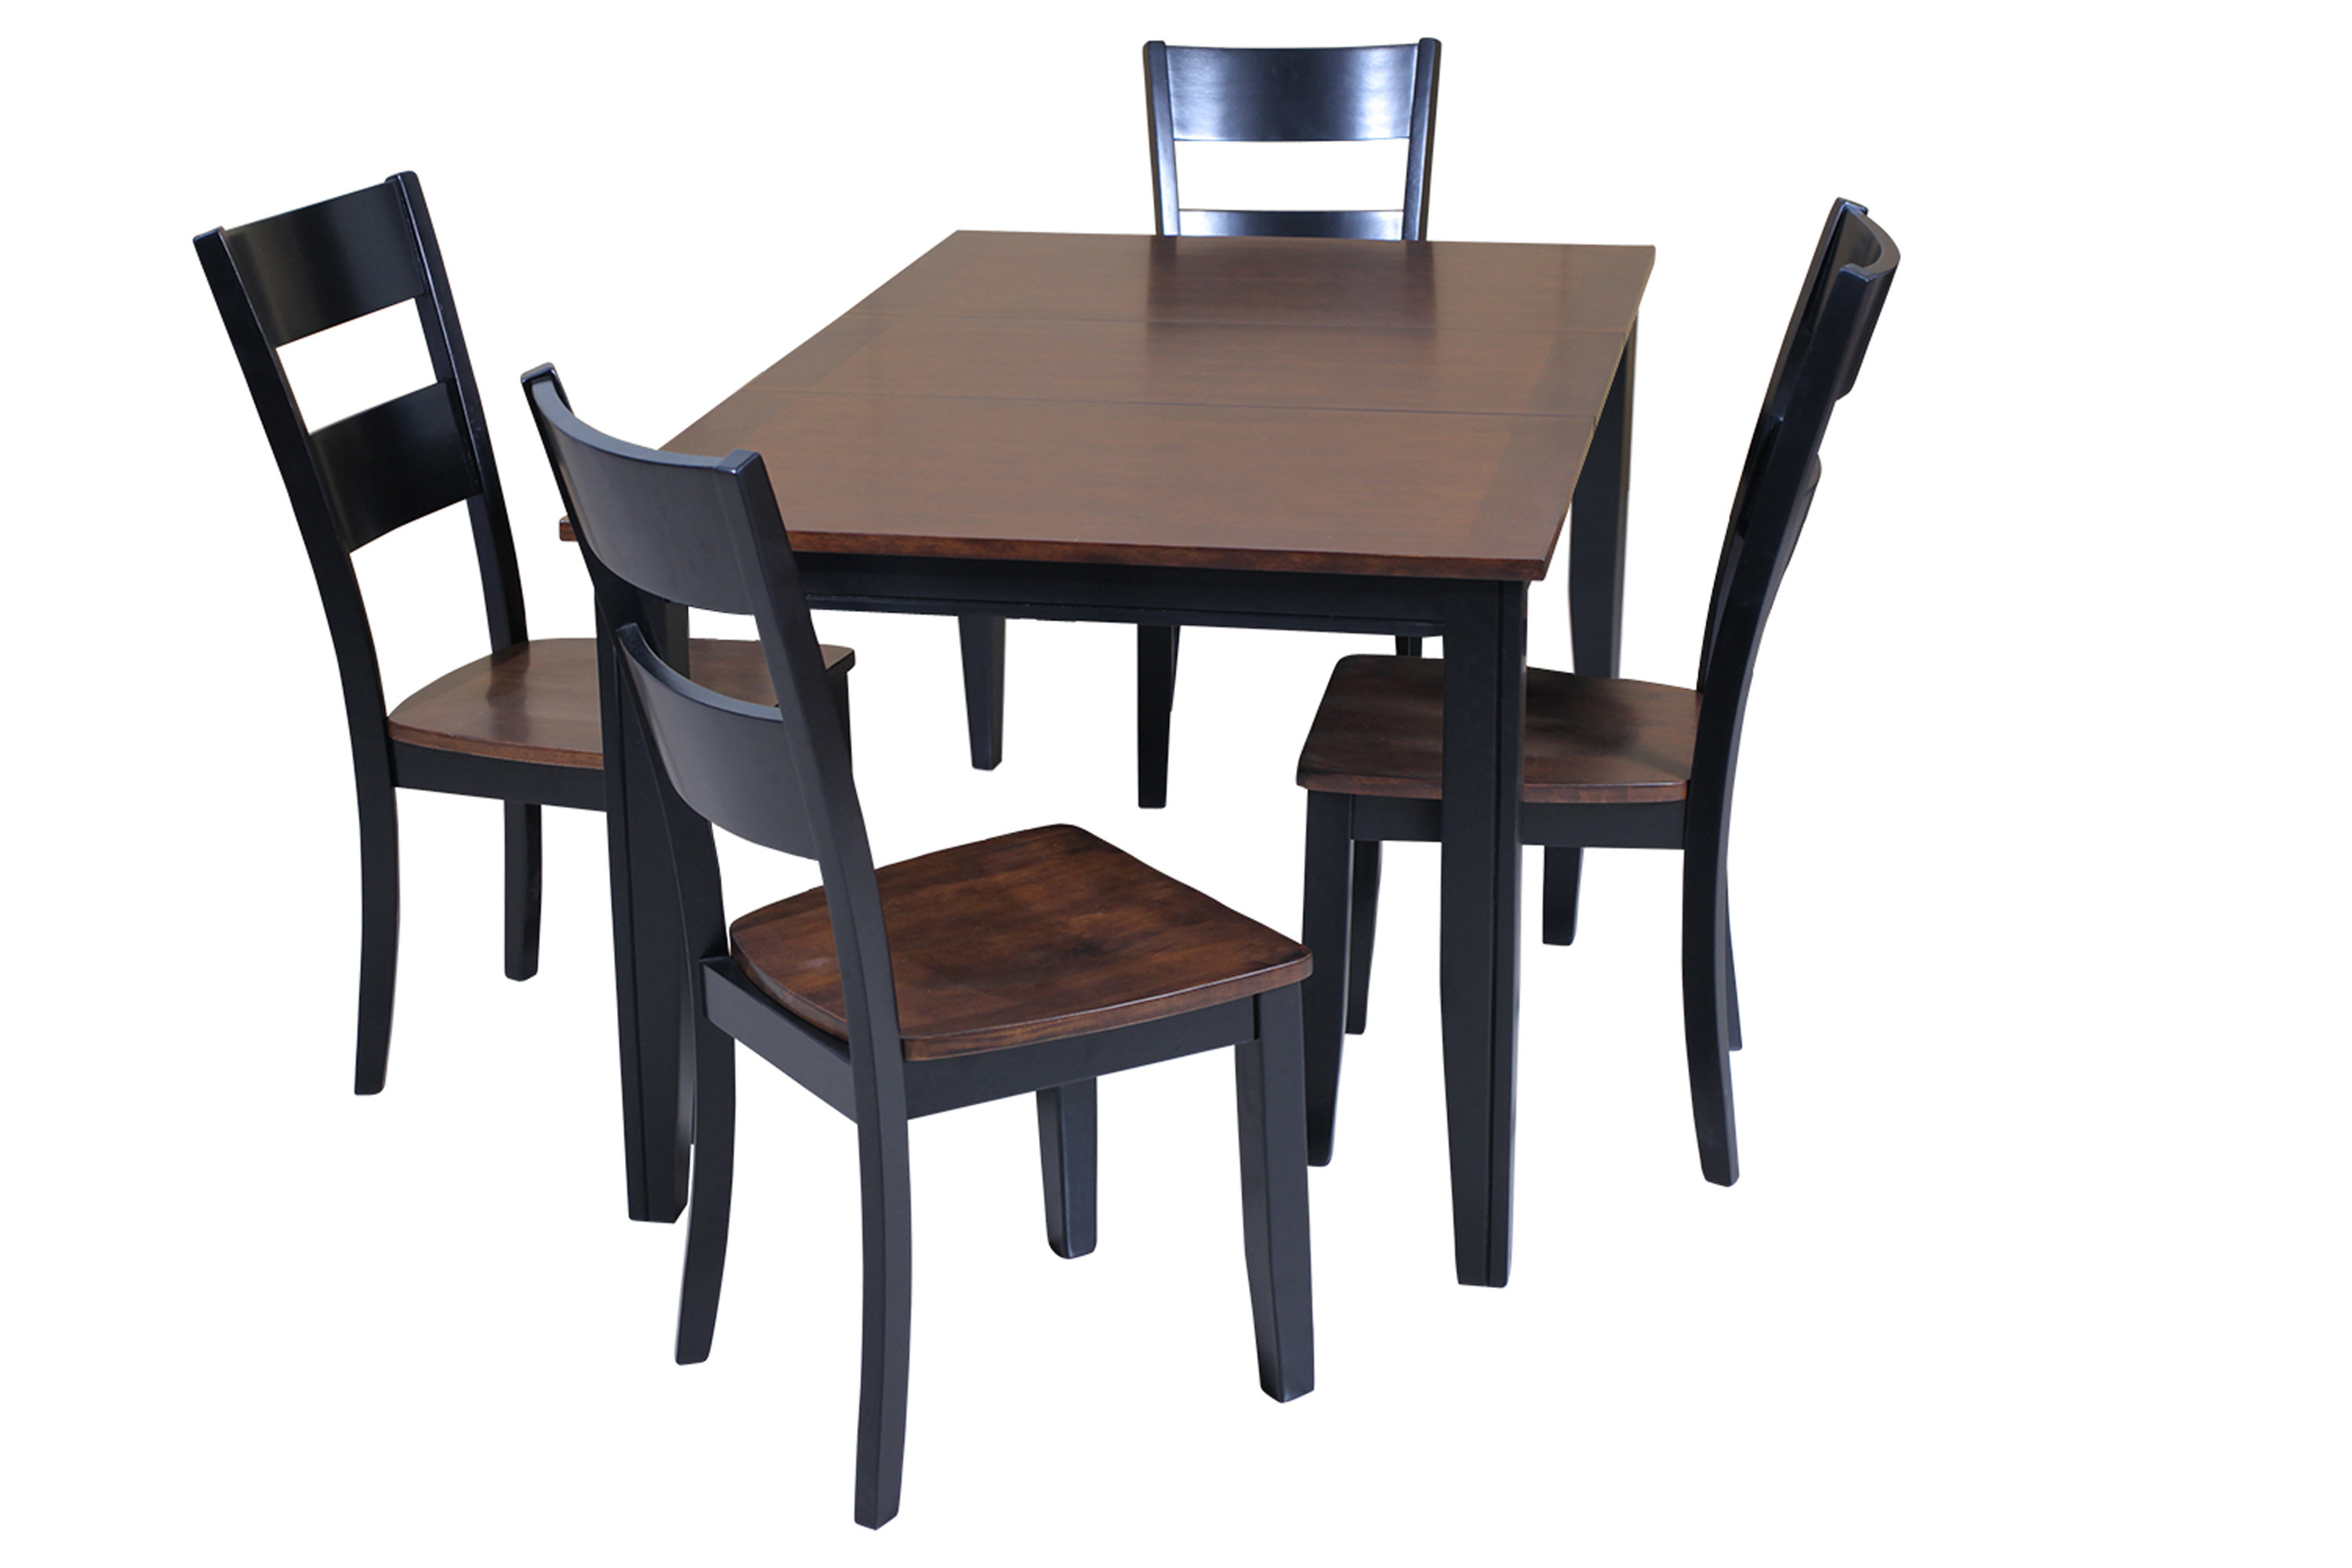 Red Barrel Studio Haan 5 Piece Solid Wood Dining Set With Butterfly Within Well Liked Adan 5 Piece Solid Wood Dining Sets (Set Of 5) (View 19 of 25)